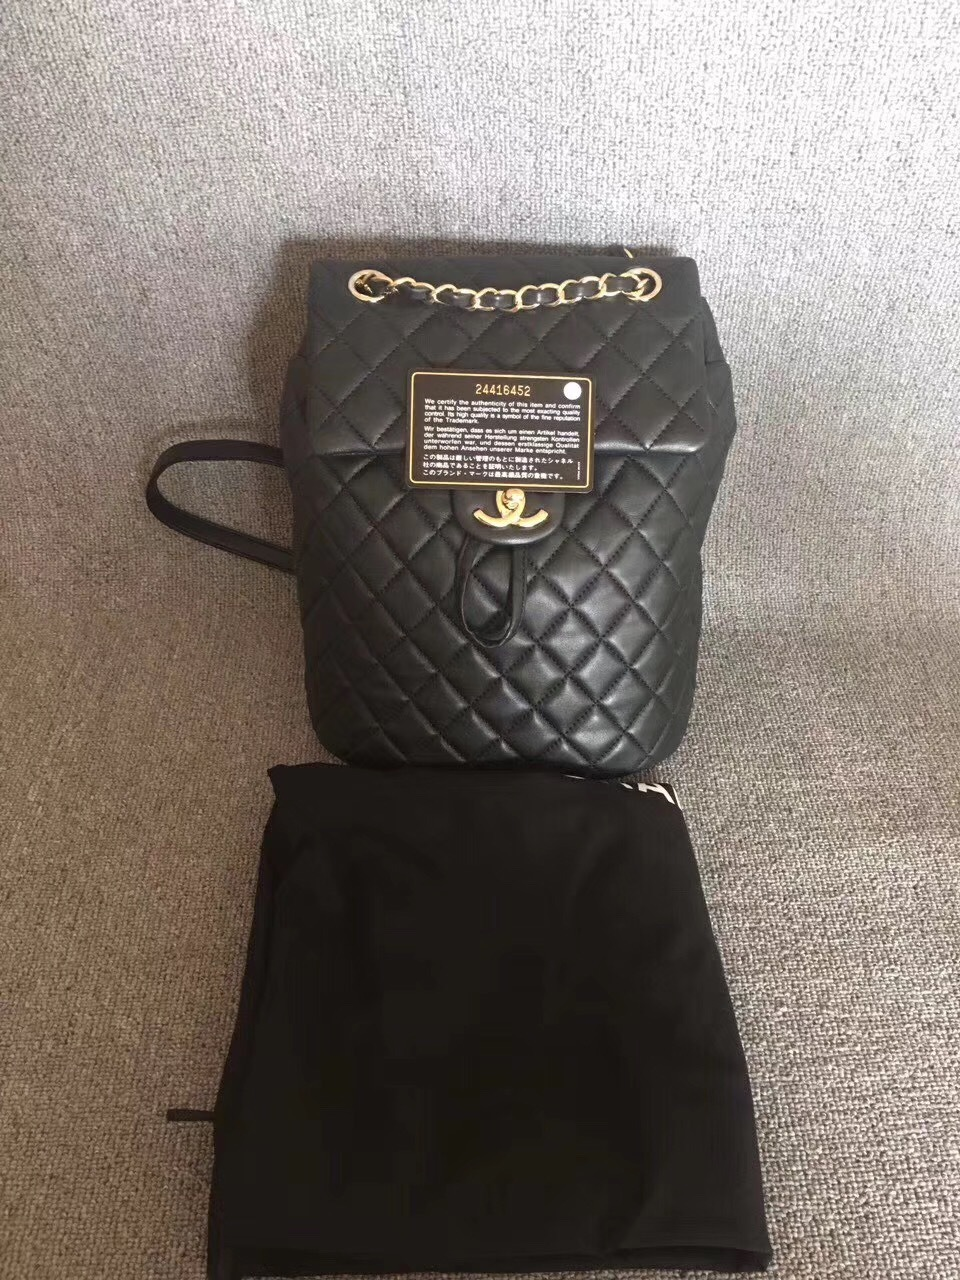 b7e48f82d54c 100% AUTHENTIC CHANEL 2017 BLACK LAMBSKIN URBAN SPIRIT BACKPACK GHW ...